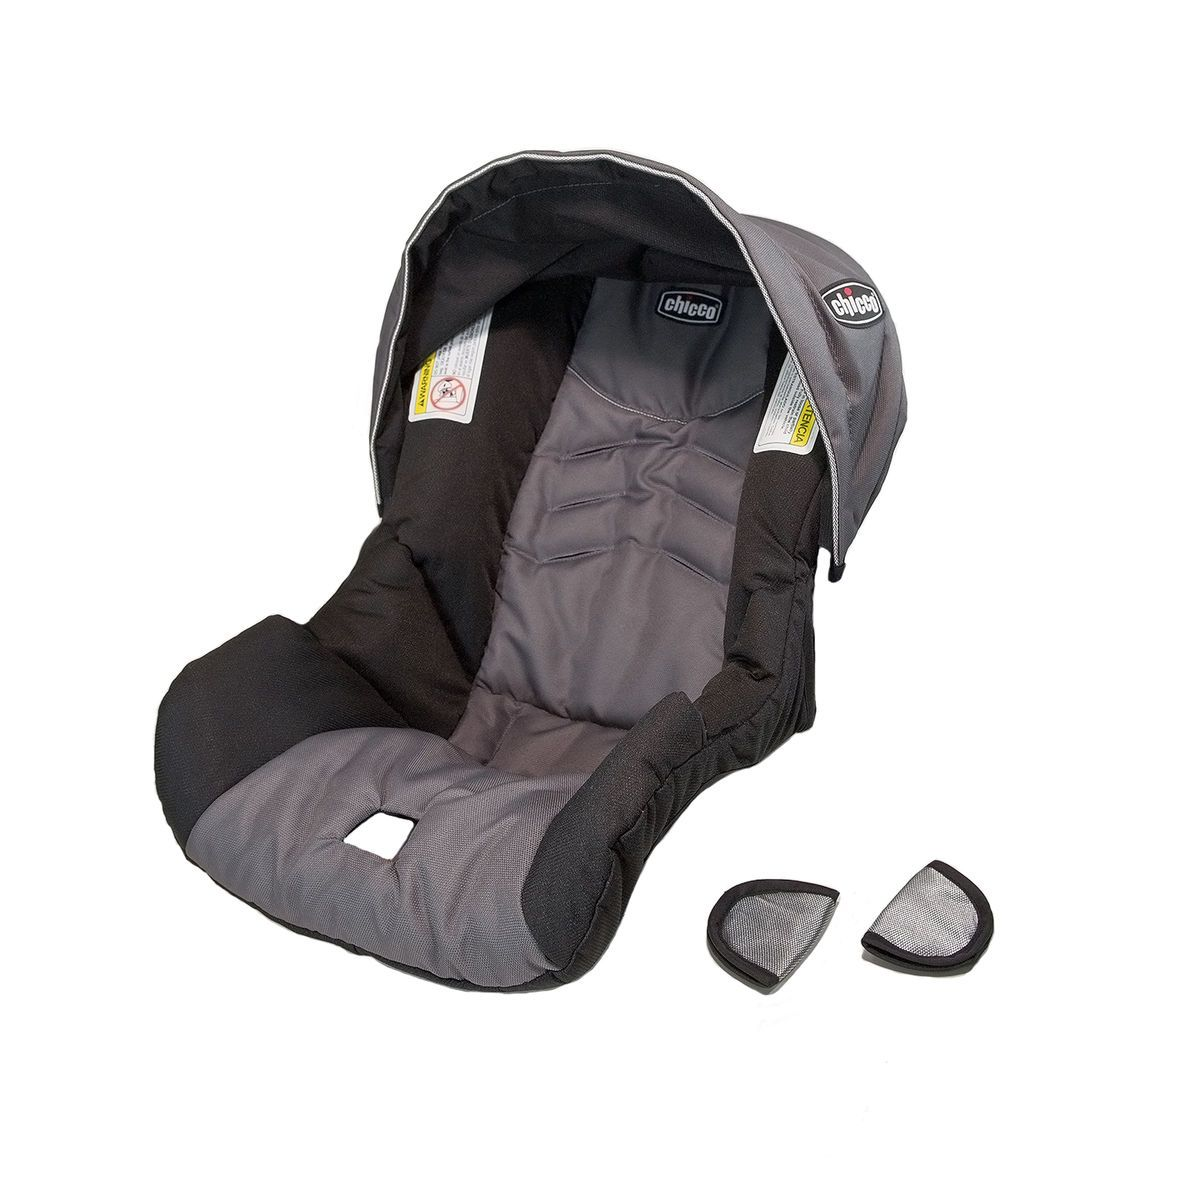 u003cpu003eReplace the Seat Cover Canopy and Shoulder Pads on your KeyFit  sc 1 st  Pinterest & pu003eReplace the Seat Cover Canopy and Shoulder Pads on your KeyFit ...